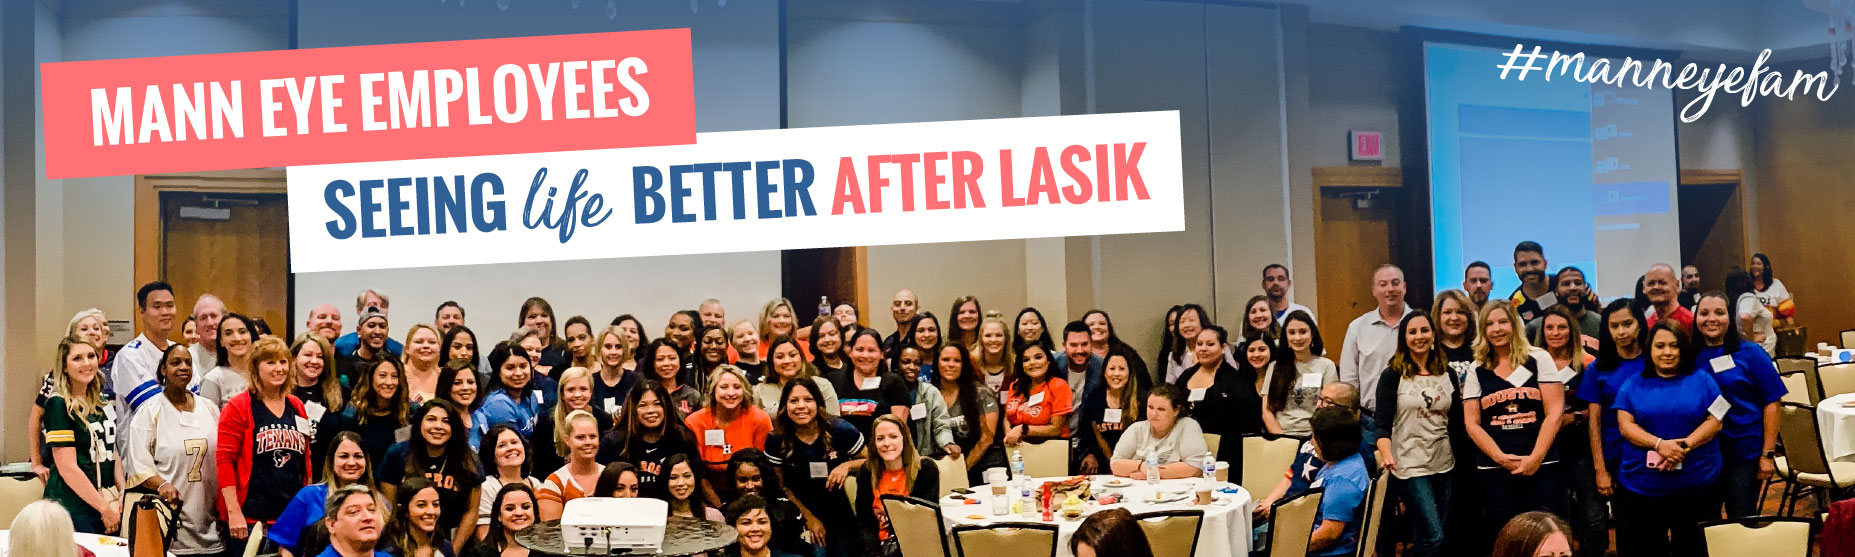 .ann eye employees who have received LASIK eye surgery gather in a room